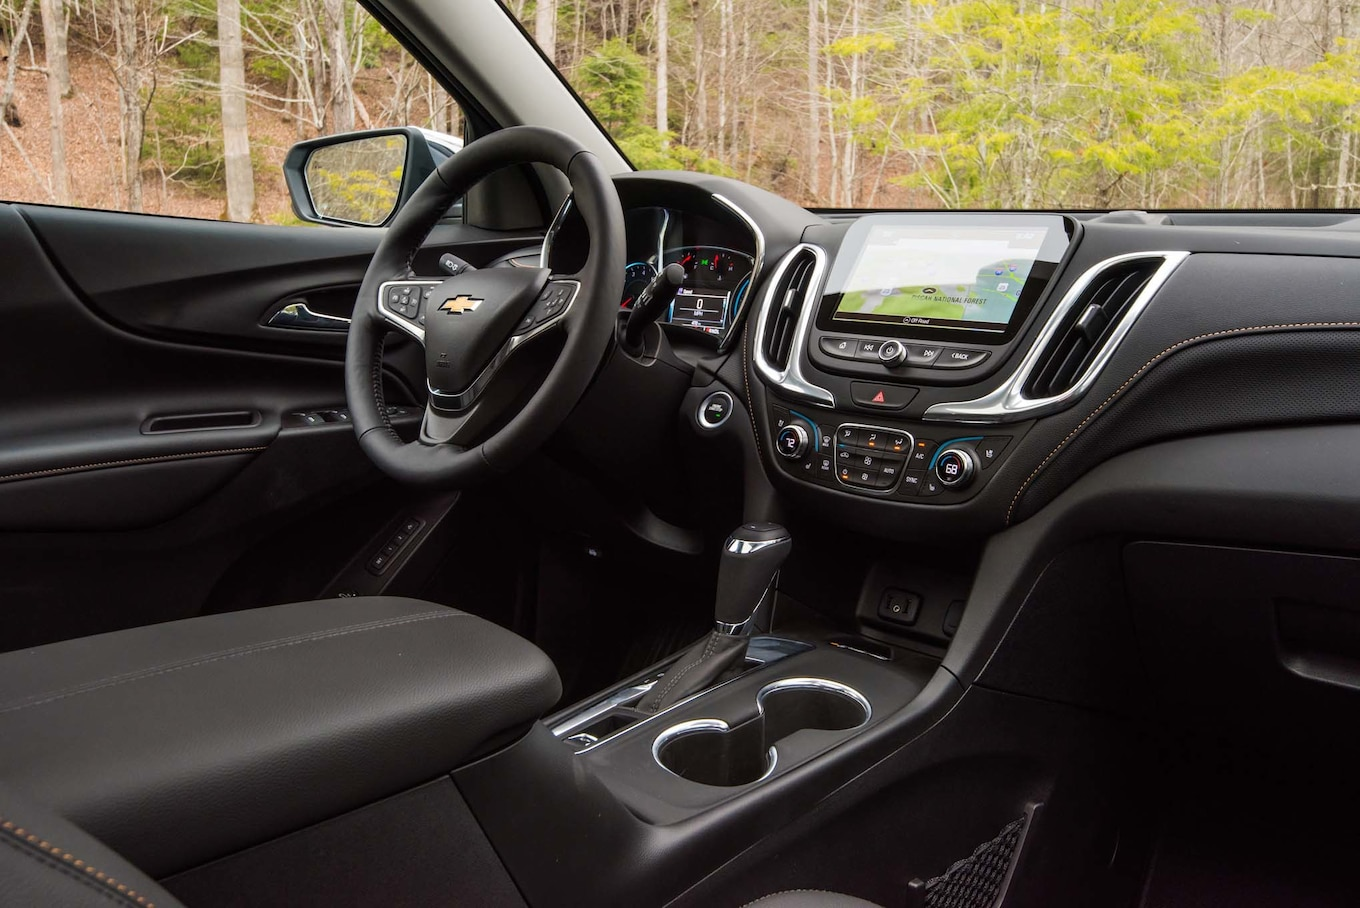 2018 Chevrolet Equinox Interior Cockpit Wallpaper (13)